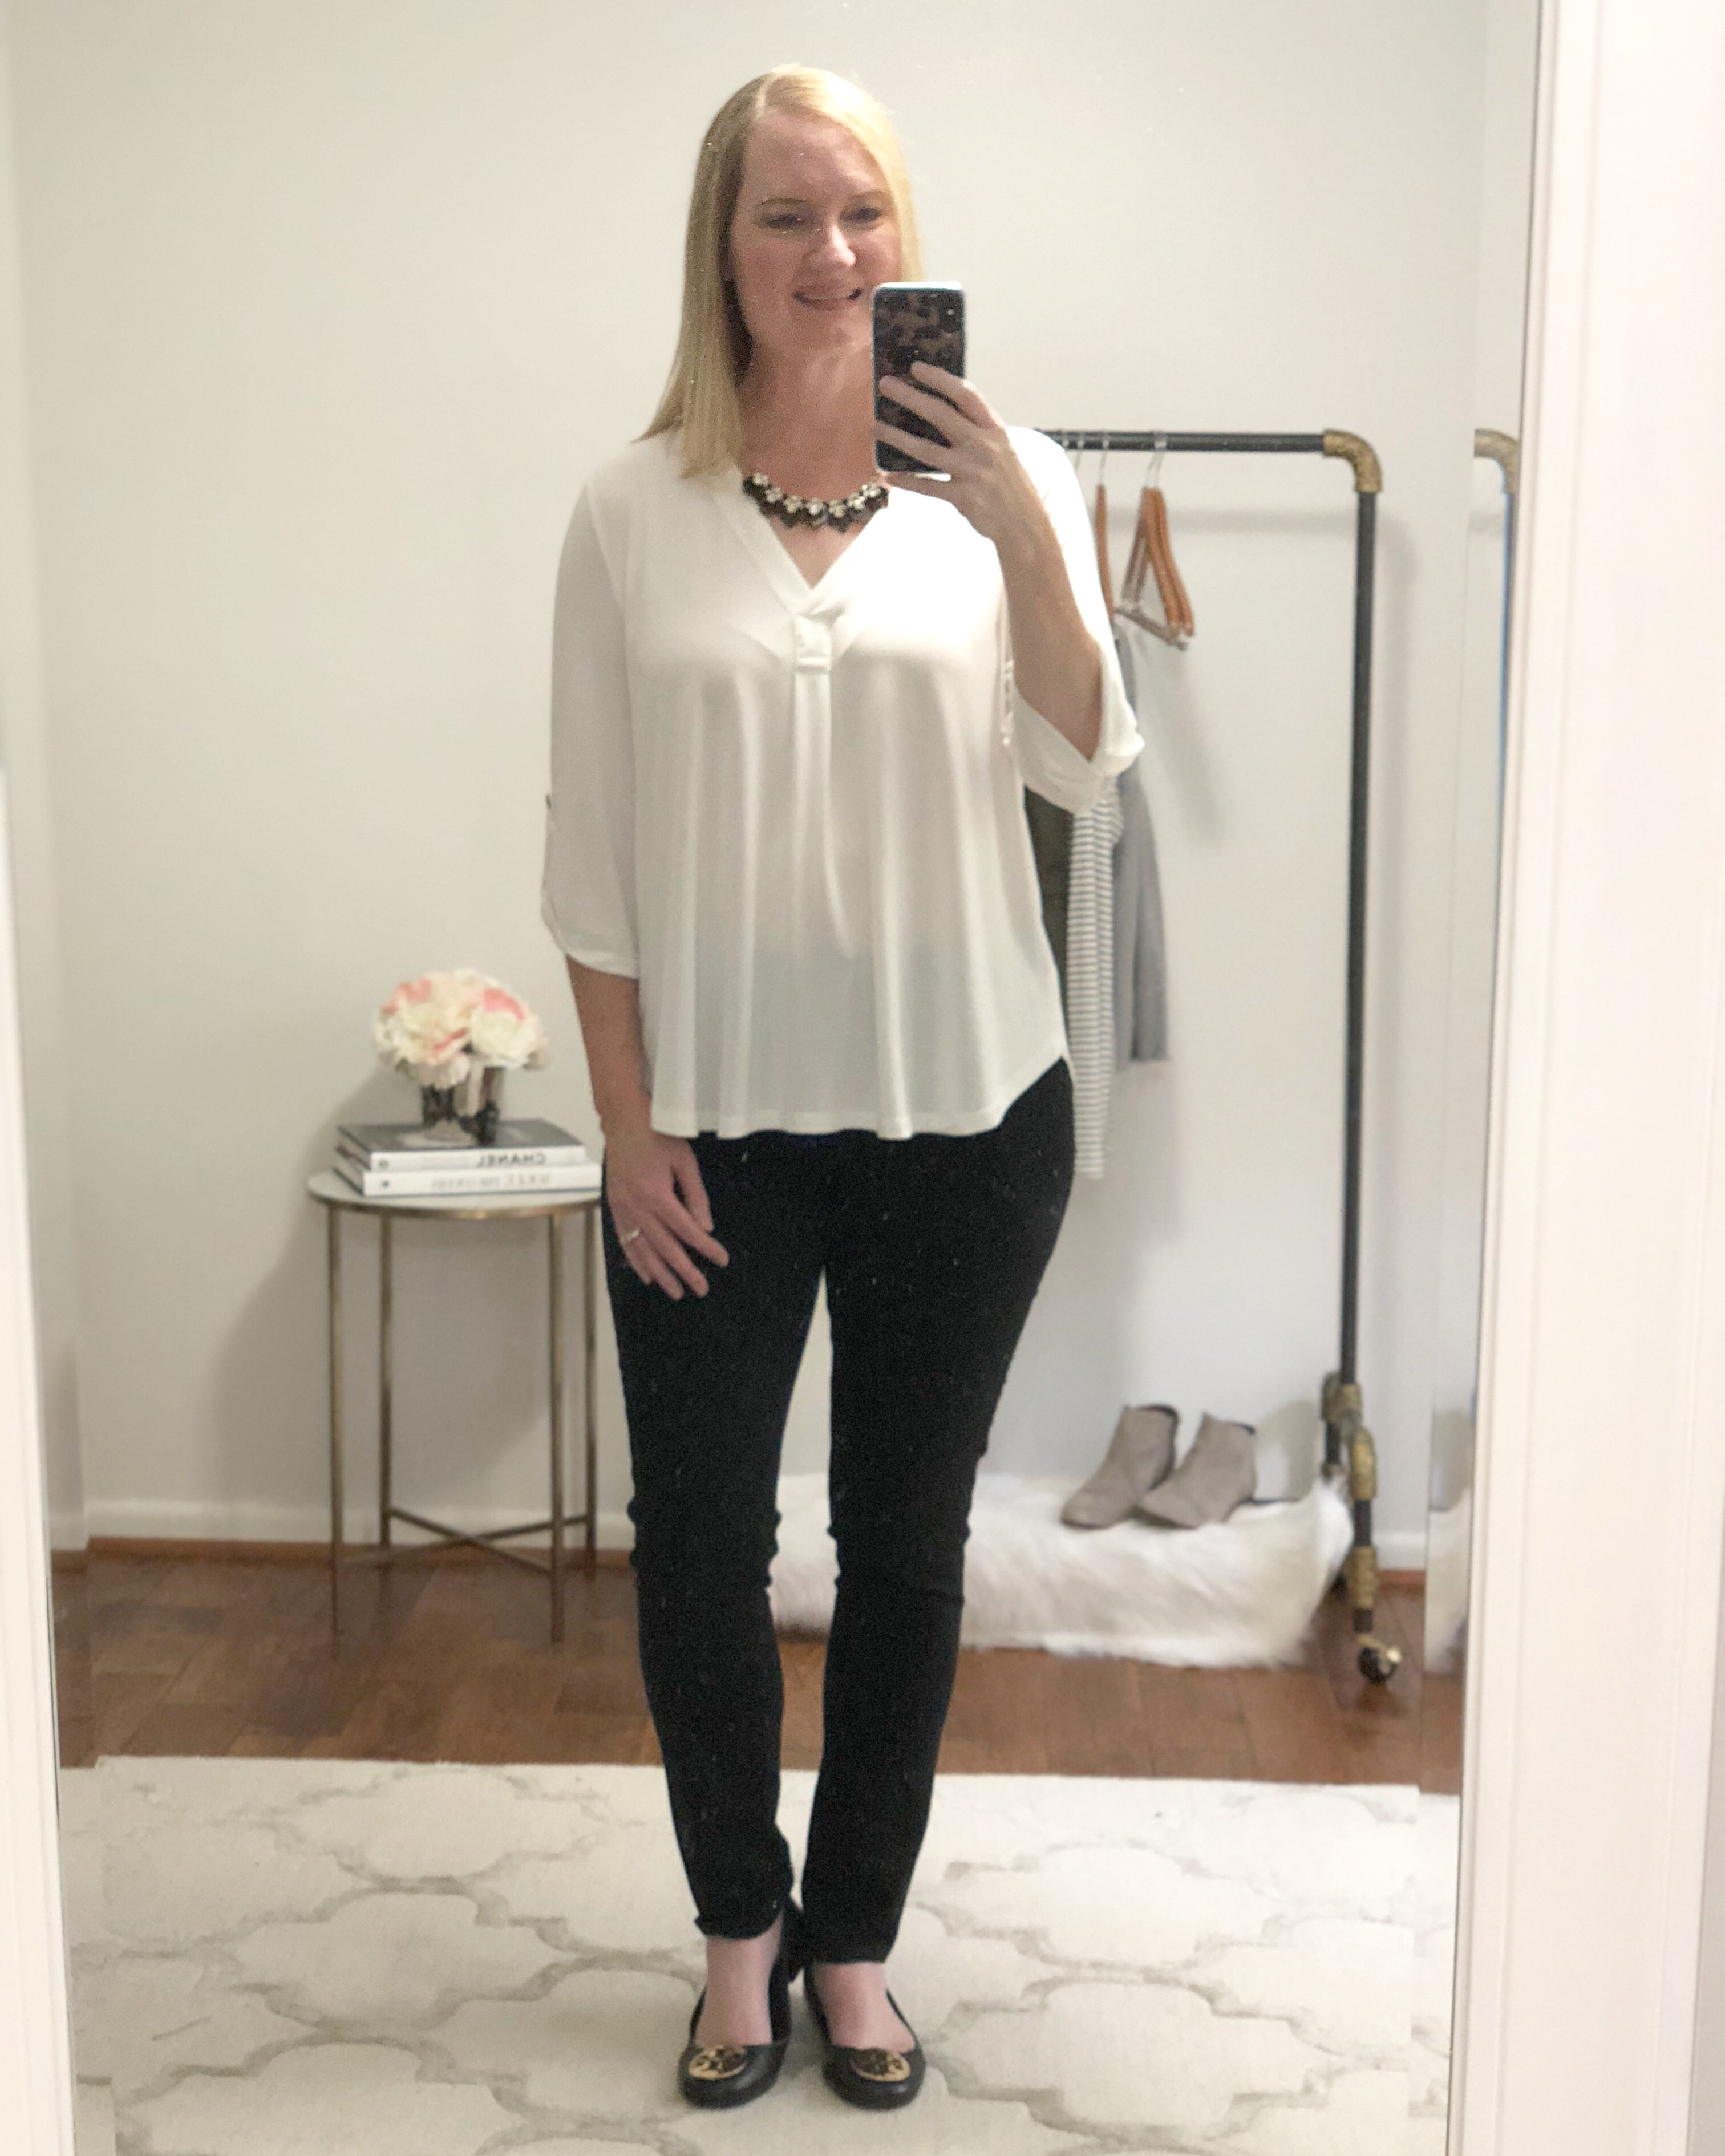 10x10 Challenge Fall 2018 - Outfit 7